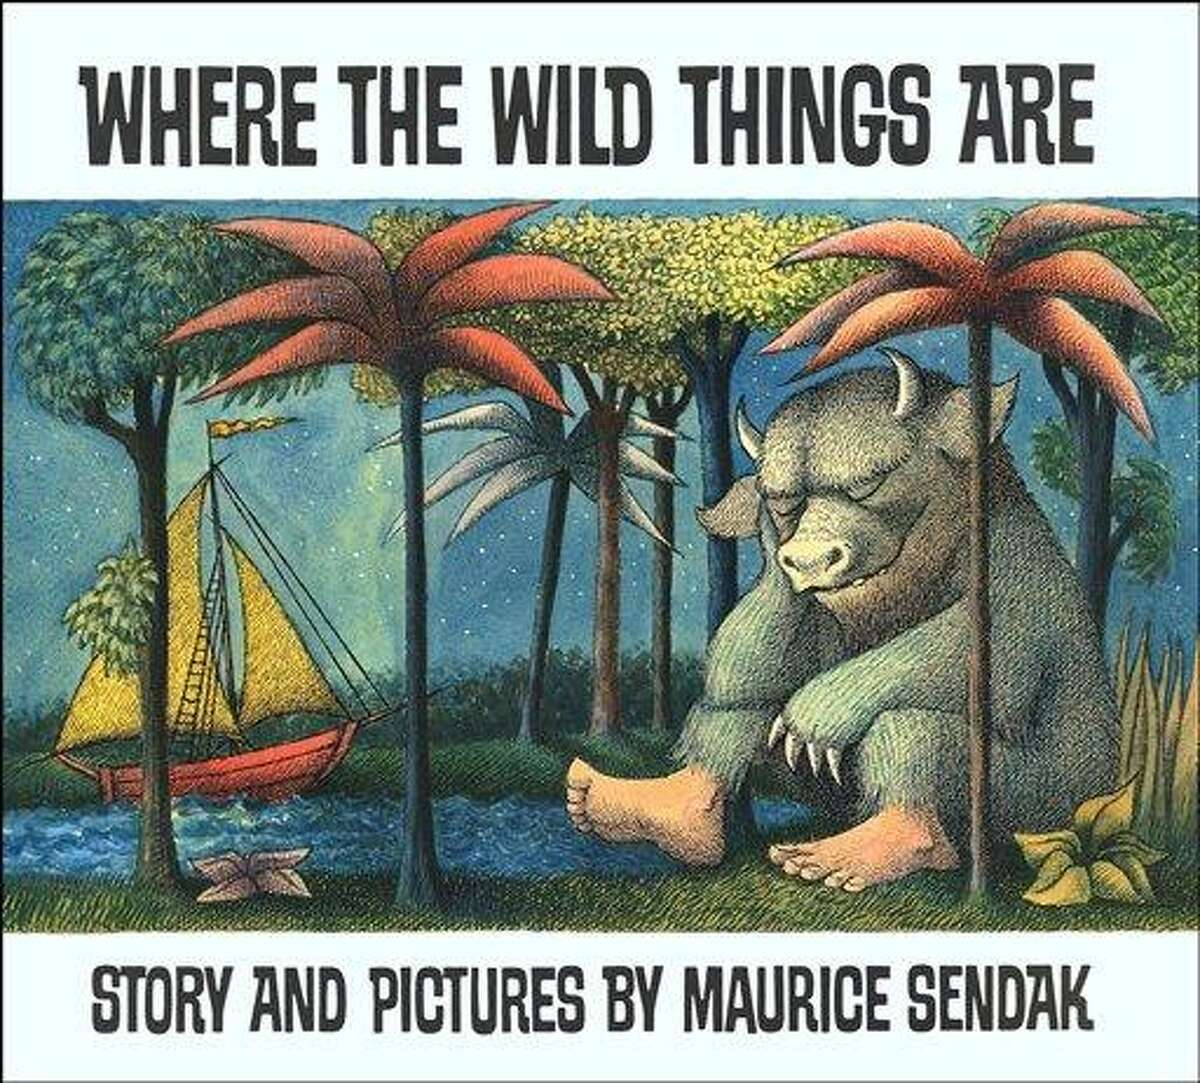 In this book cover image released by HarperCollins, Sendak's